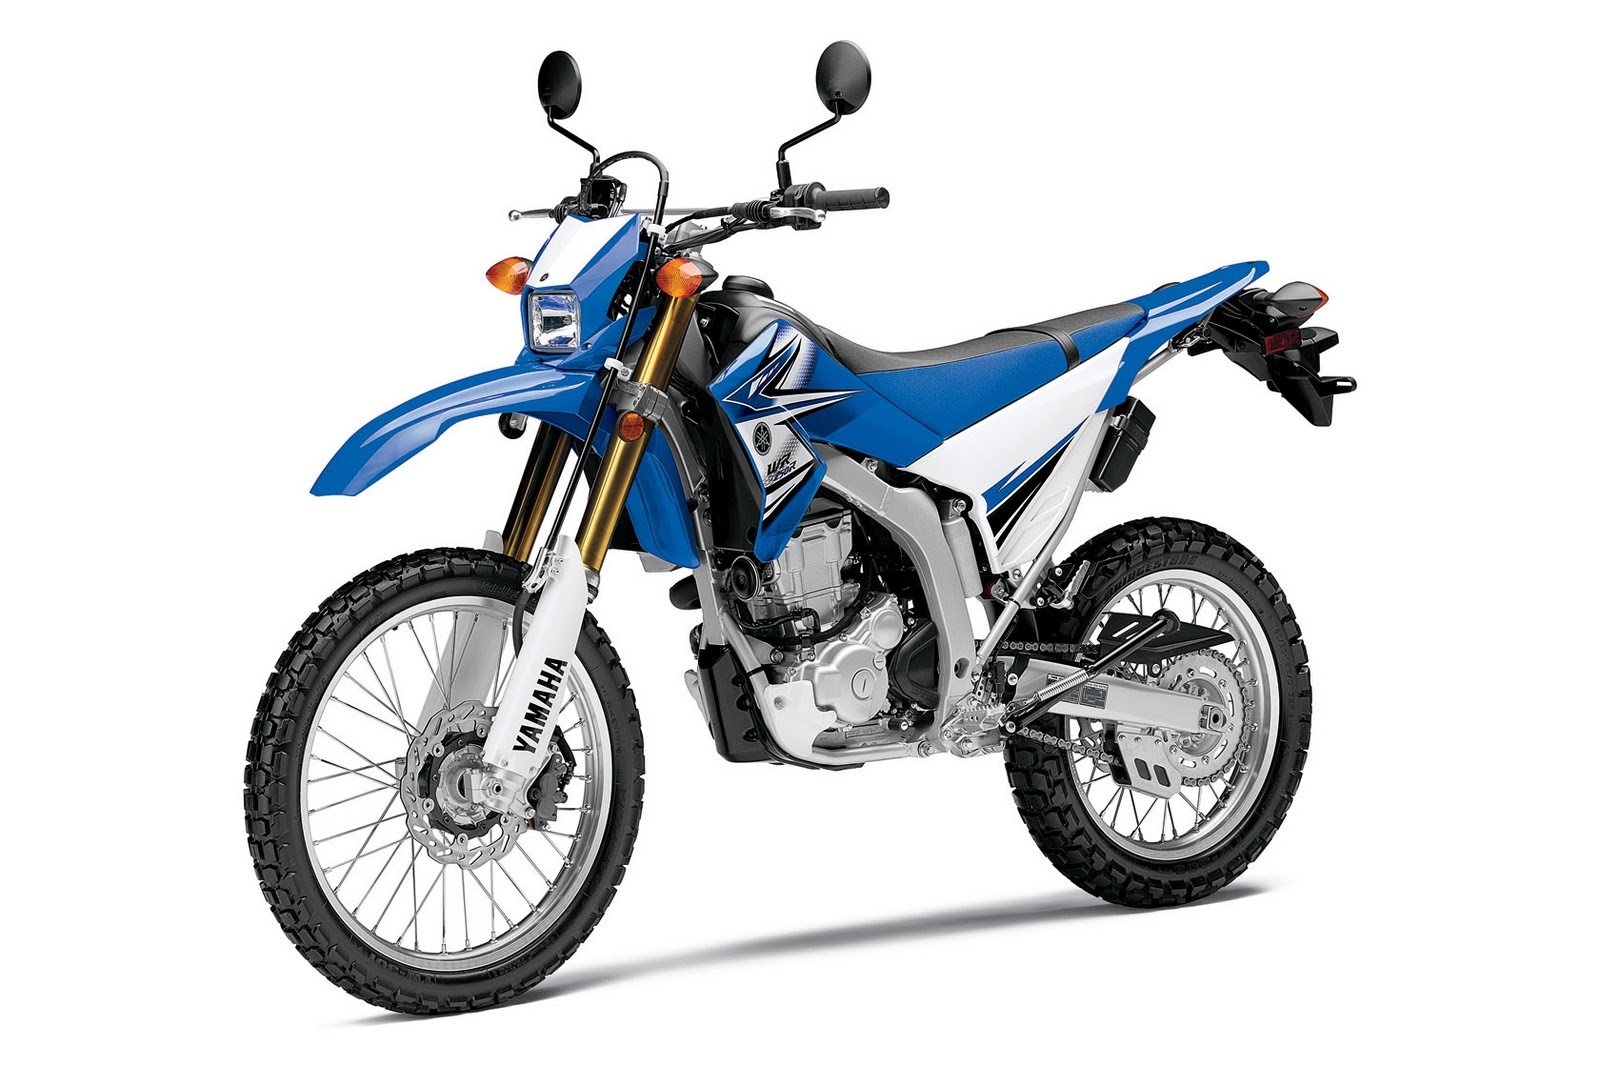 Yamaha Motorcycle Pictures Yamaha Wr250r 2011